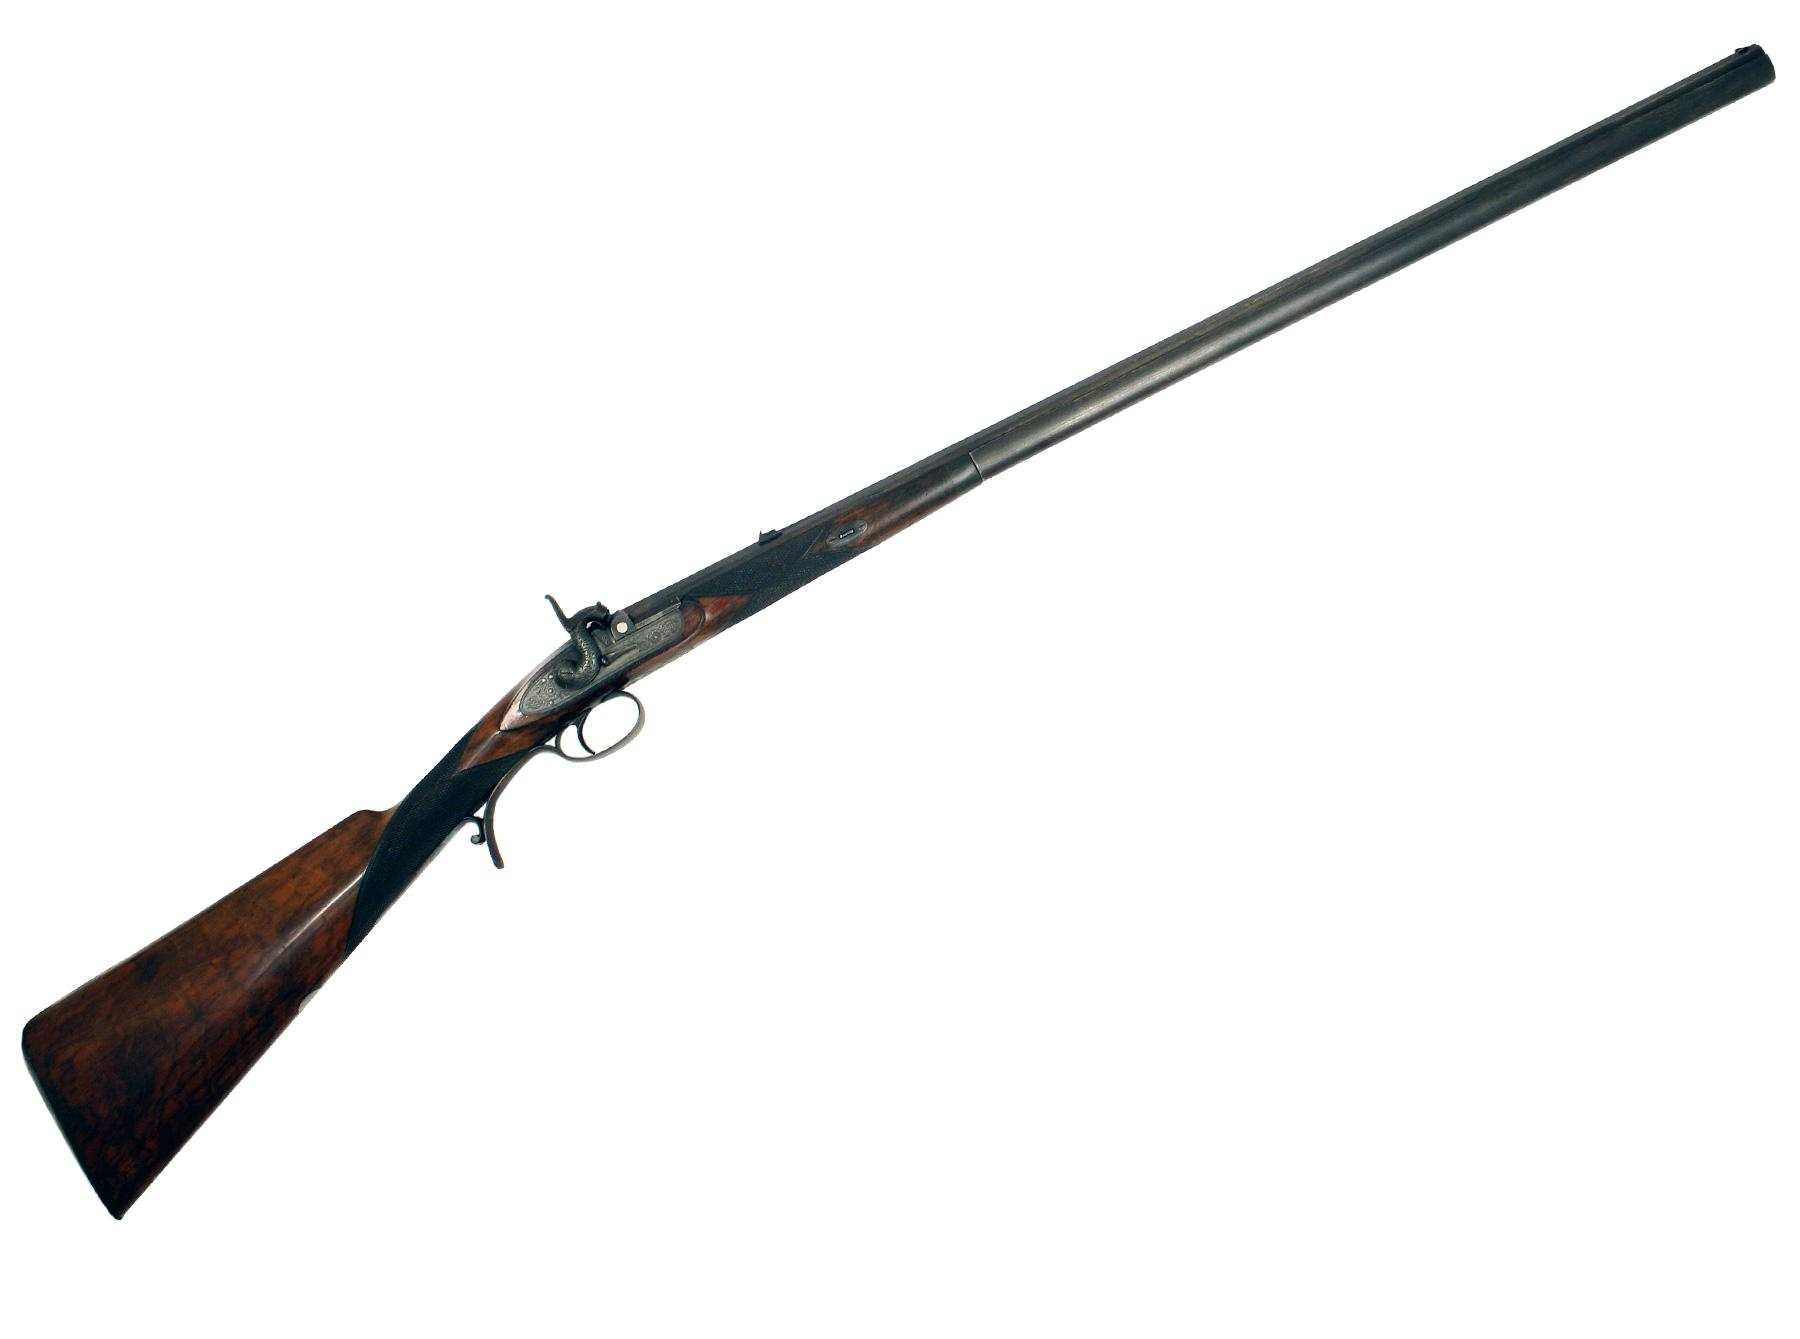 A Percussion Park Rifle by J. W. Edge